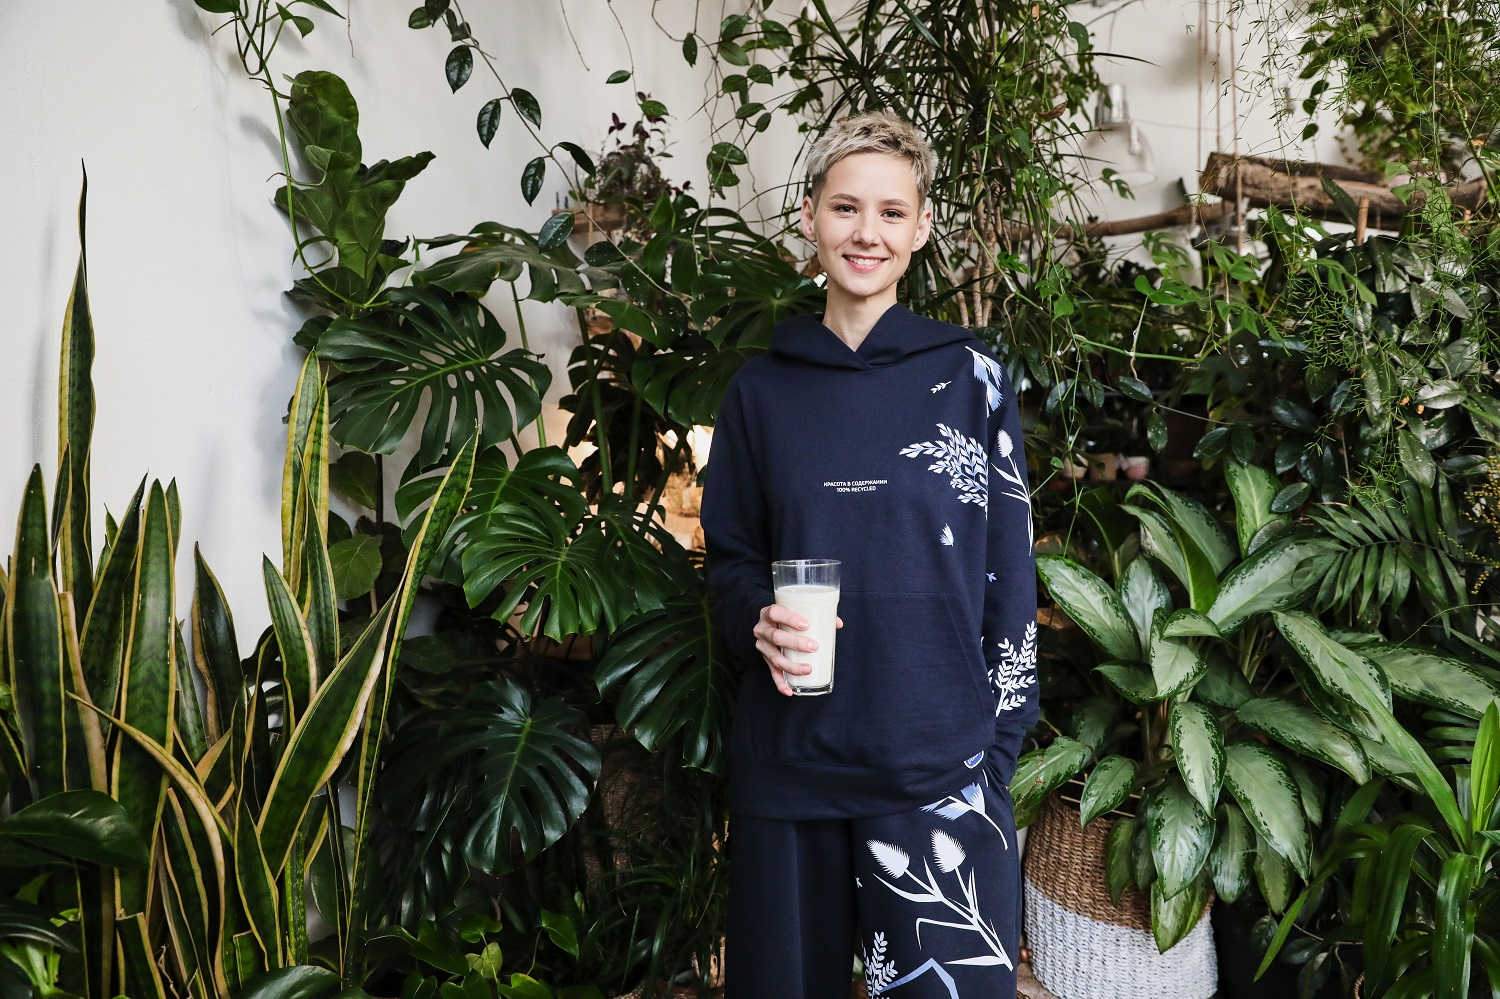 Olga Glagoleva, head designer at 99Recycle standing in front of green potted plants holding a glass of milk